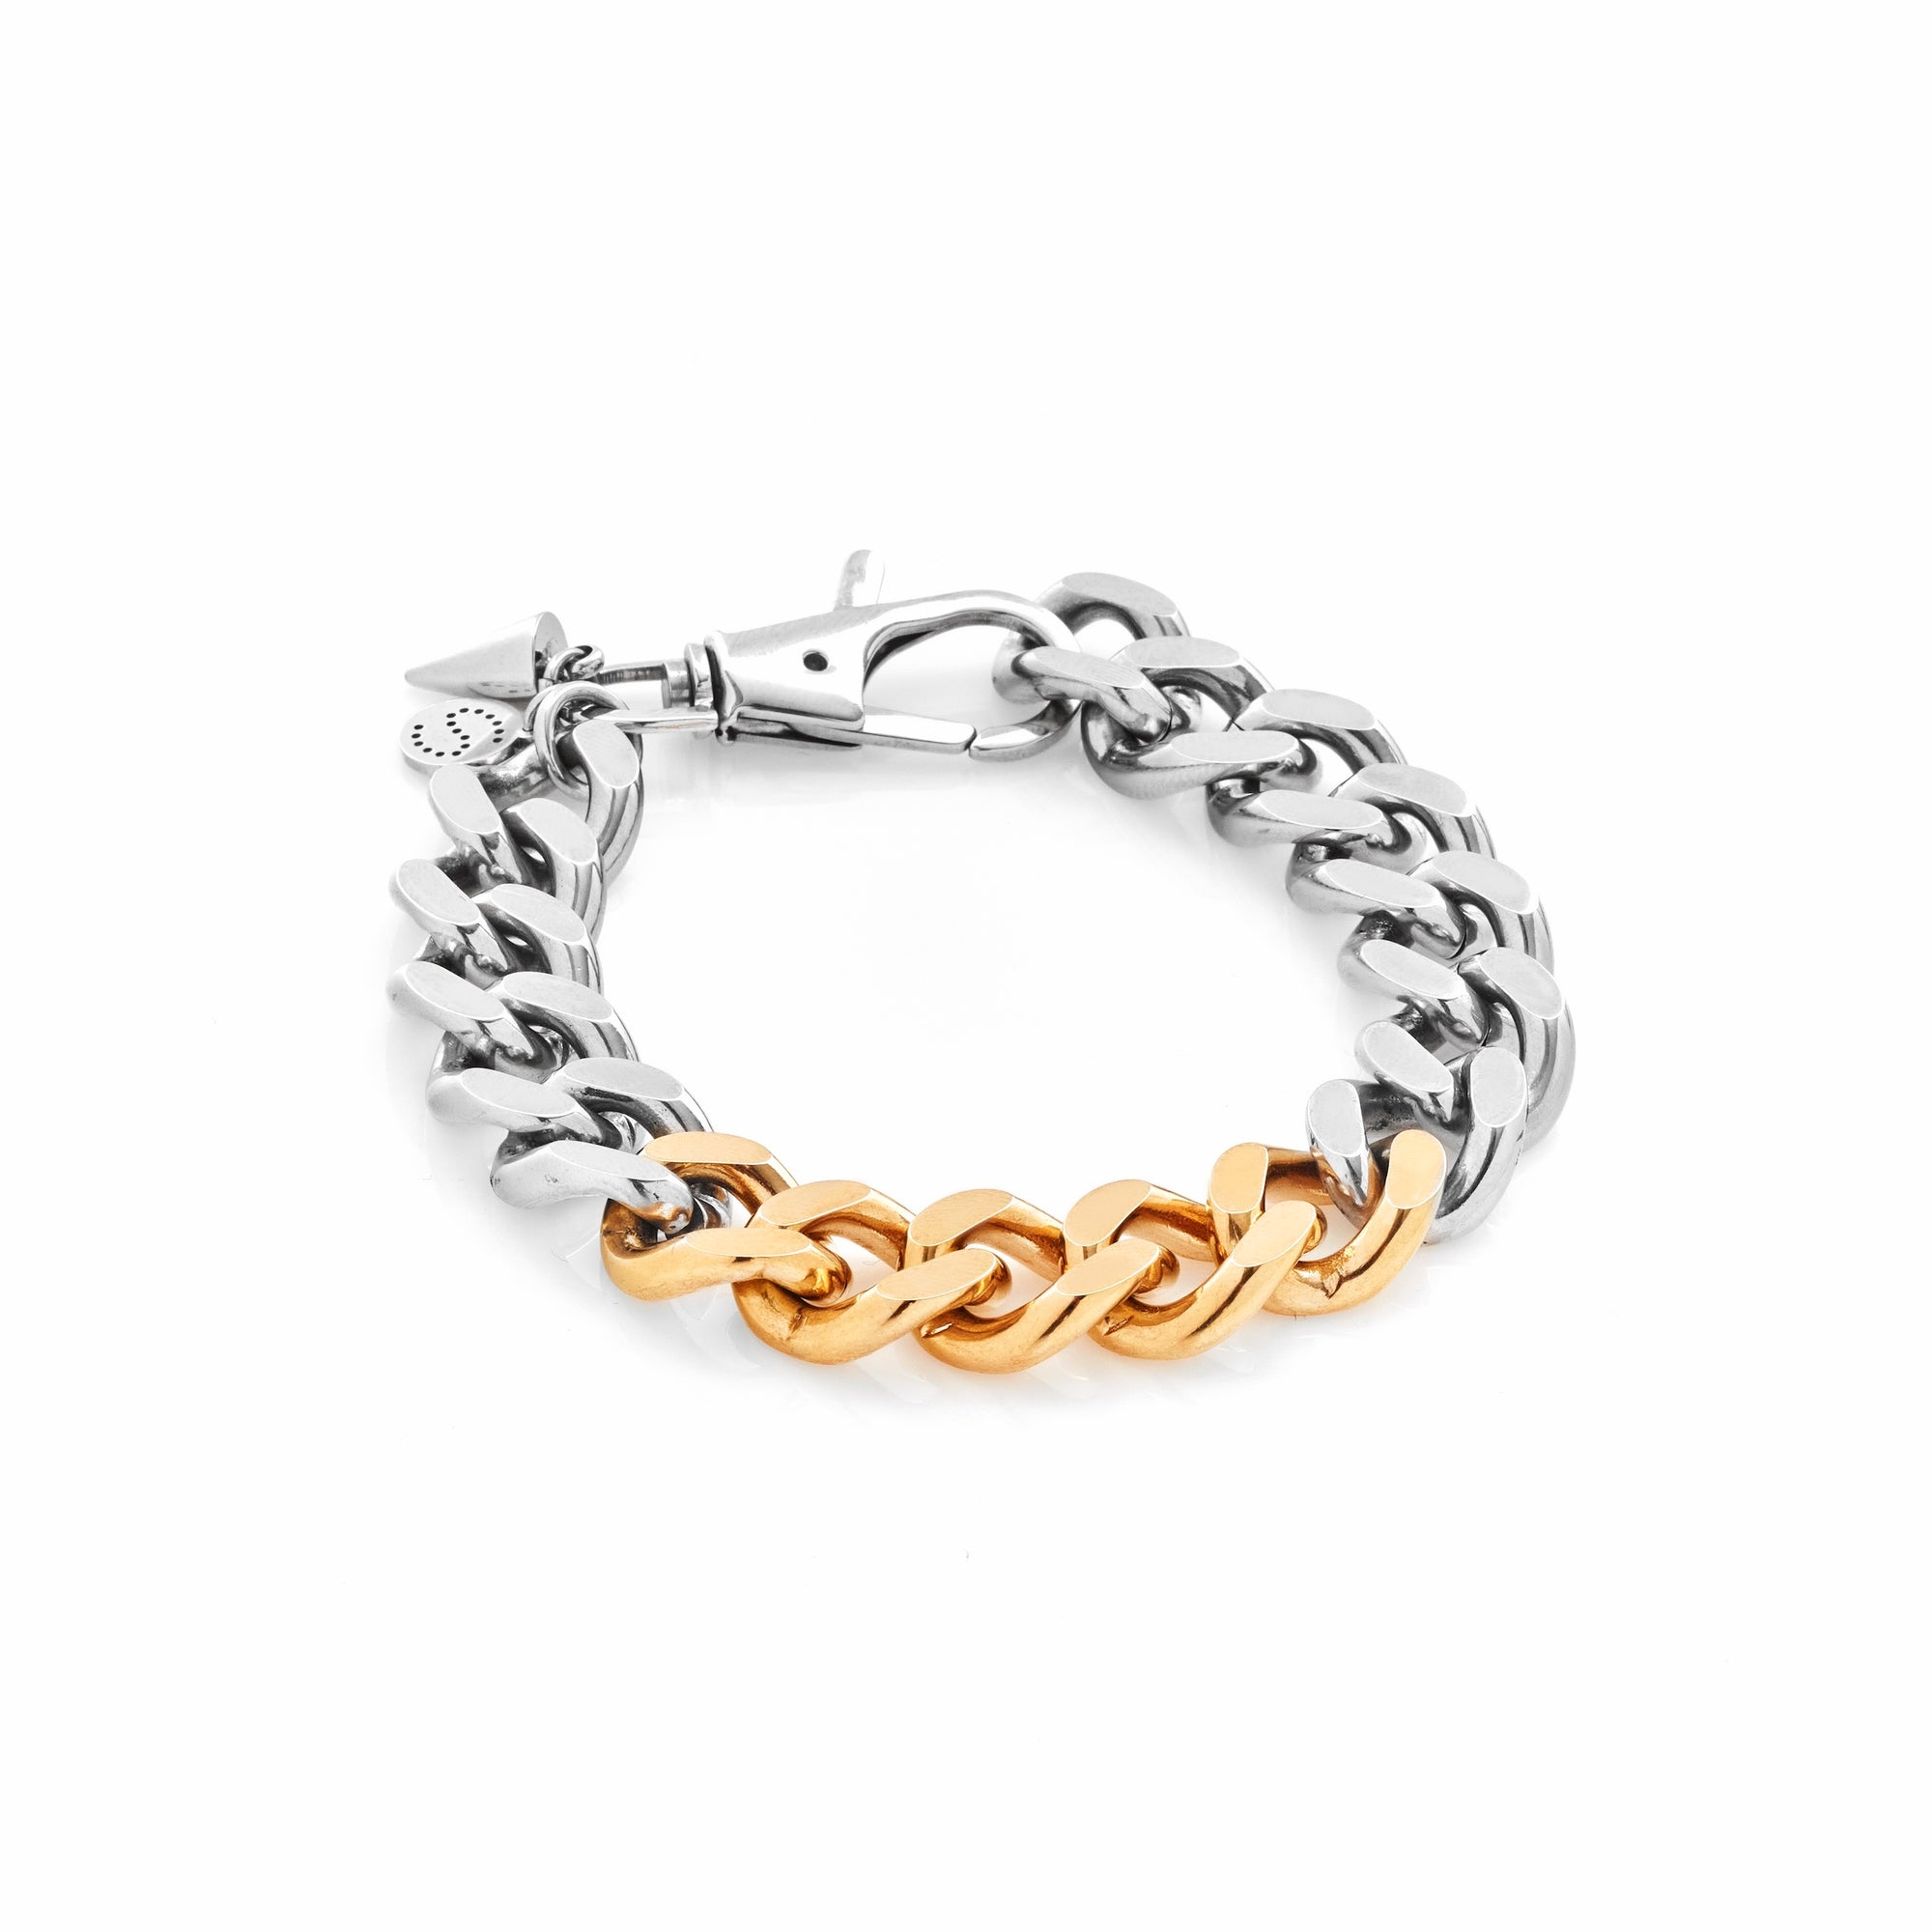 Silk & Steel x Storm Collab Two-Tone Revival curb chain Bracelet